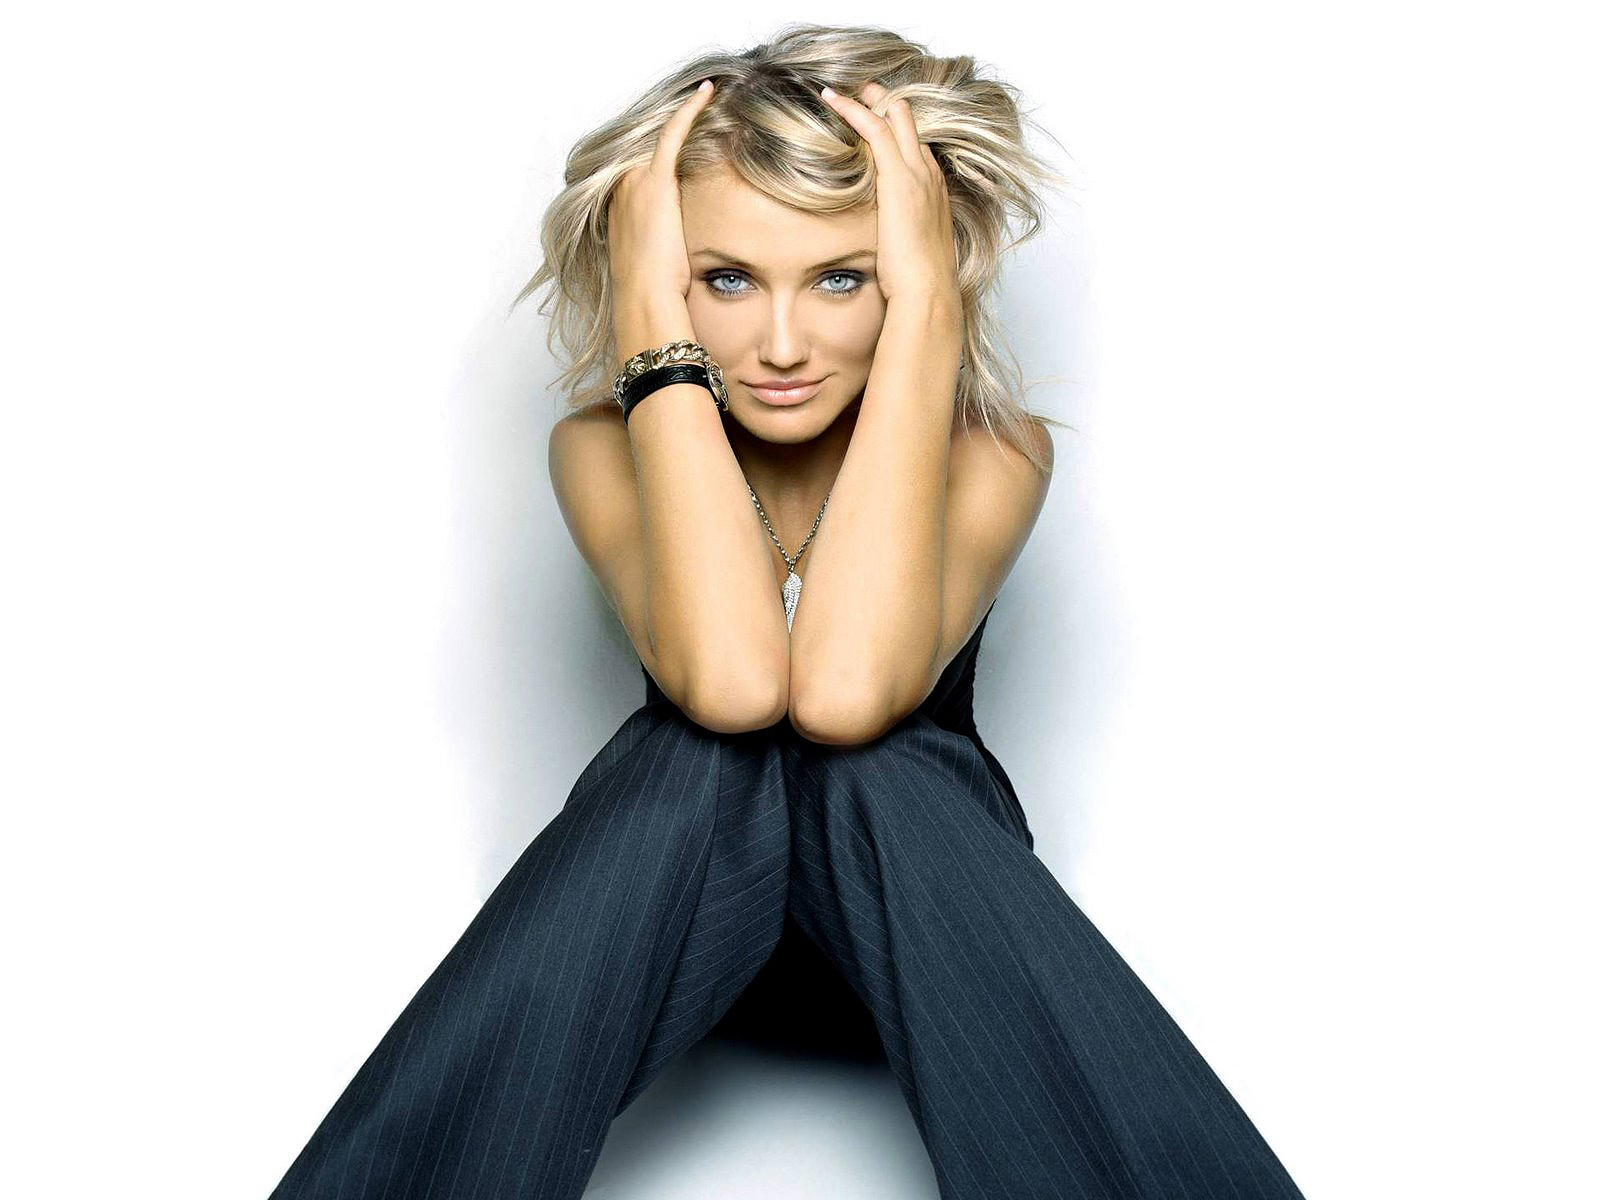 Wallpaper Collections: Cameron Diaz Wallpapers  |Cameron Diaz Wallpaper